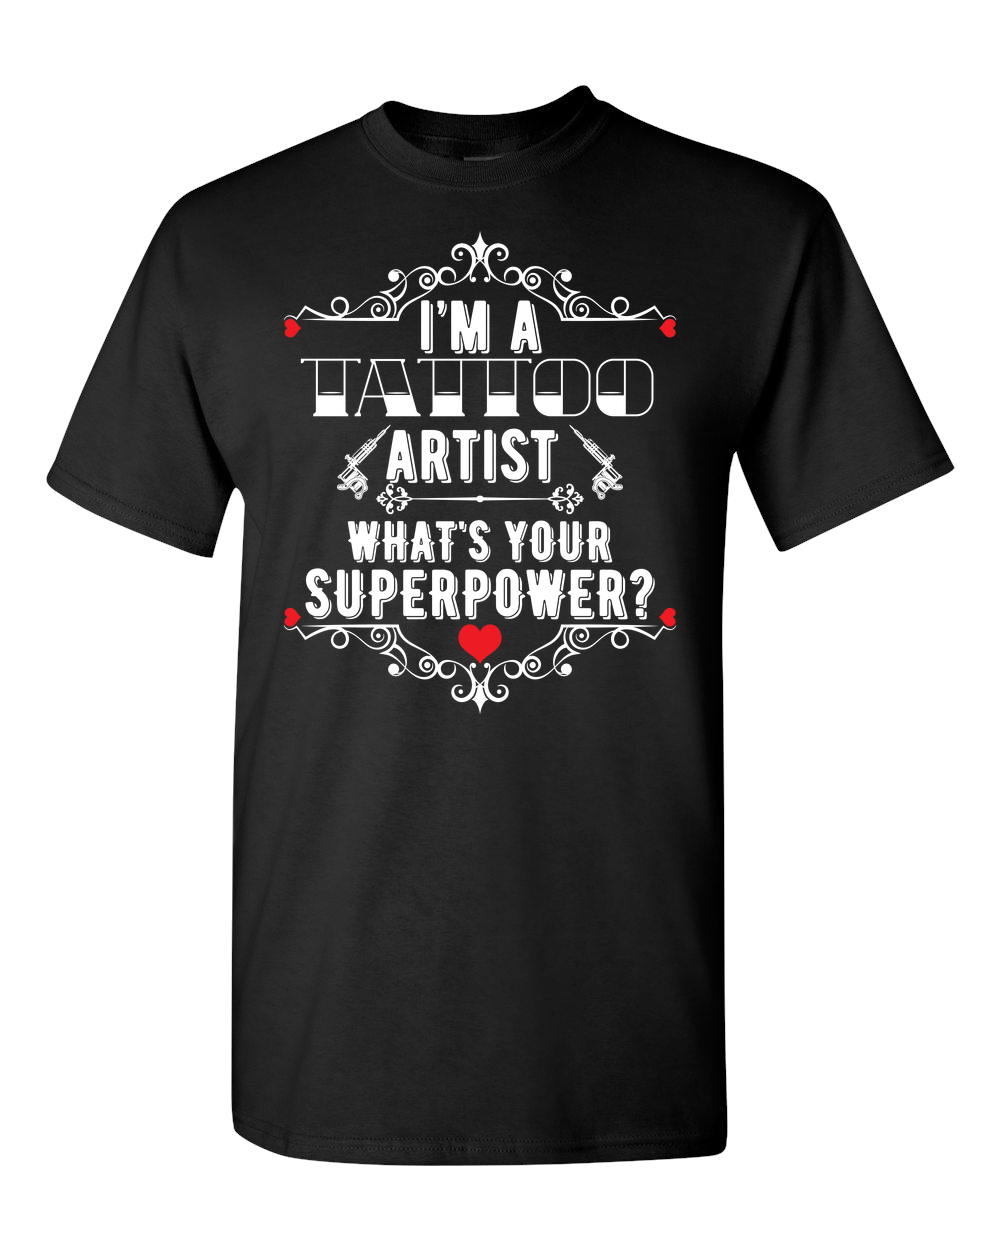 Tattoo Artist What's Your Superpower? Adult Unisex T-Shirt